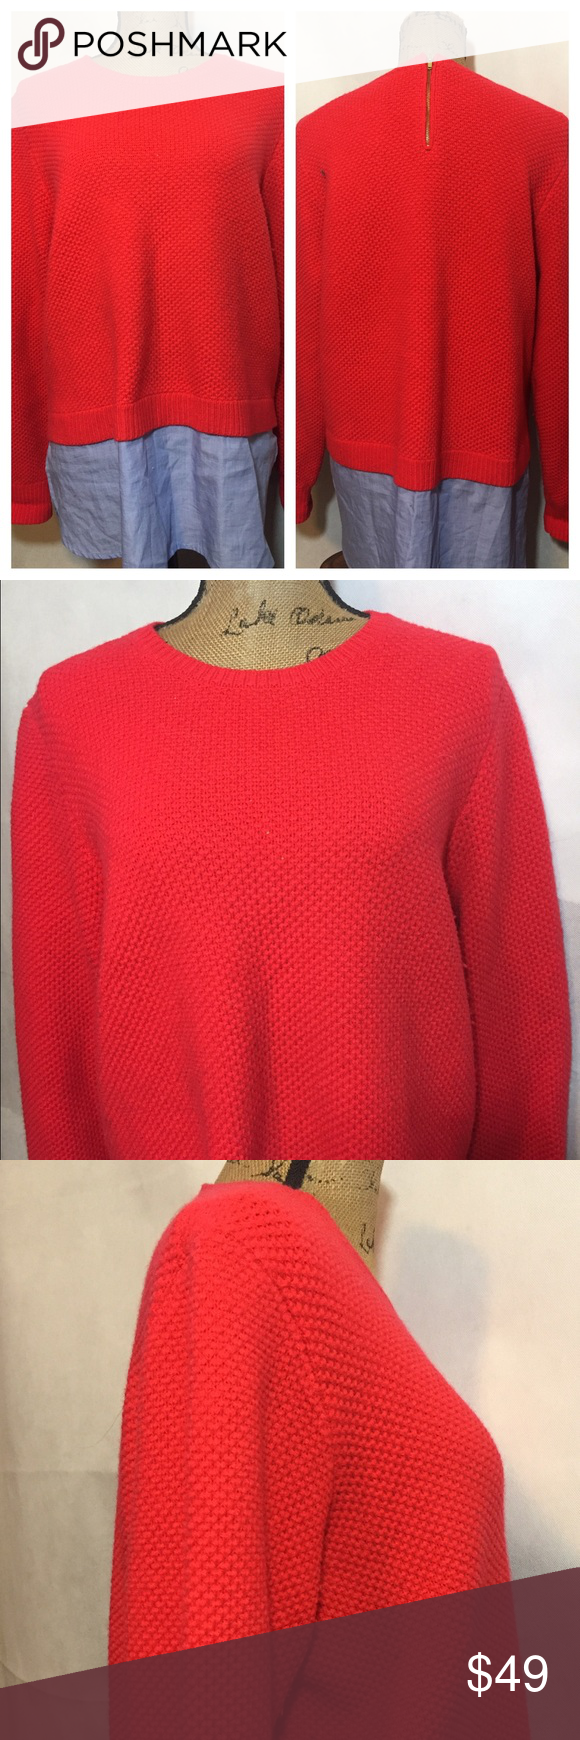 J. Crew wool/cotton layered shirt Used good condition see photos. Very unique! Dry clean. J. Crew Sweaters